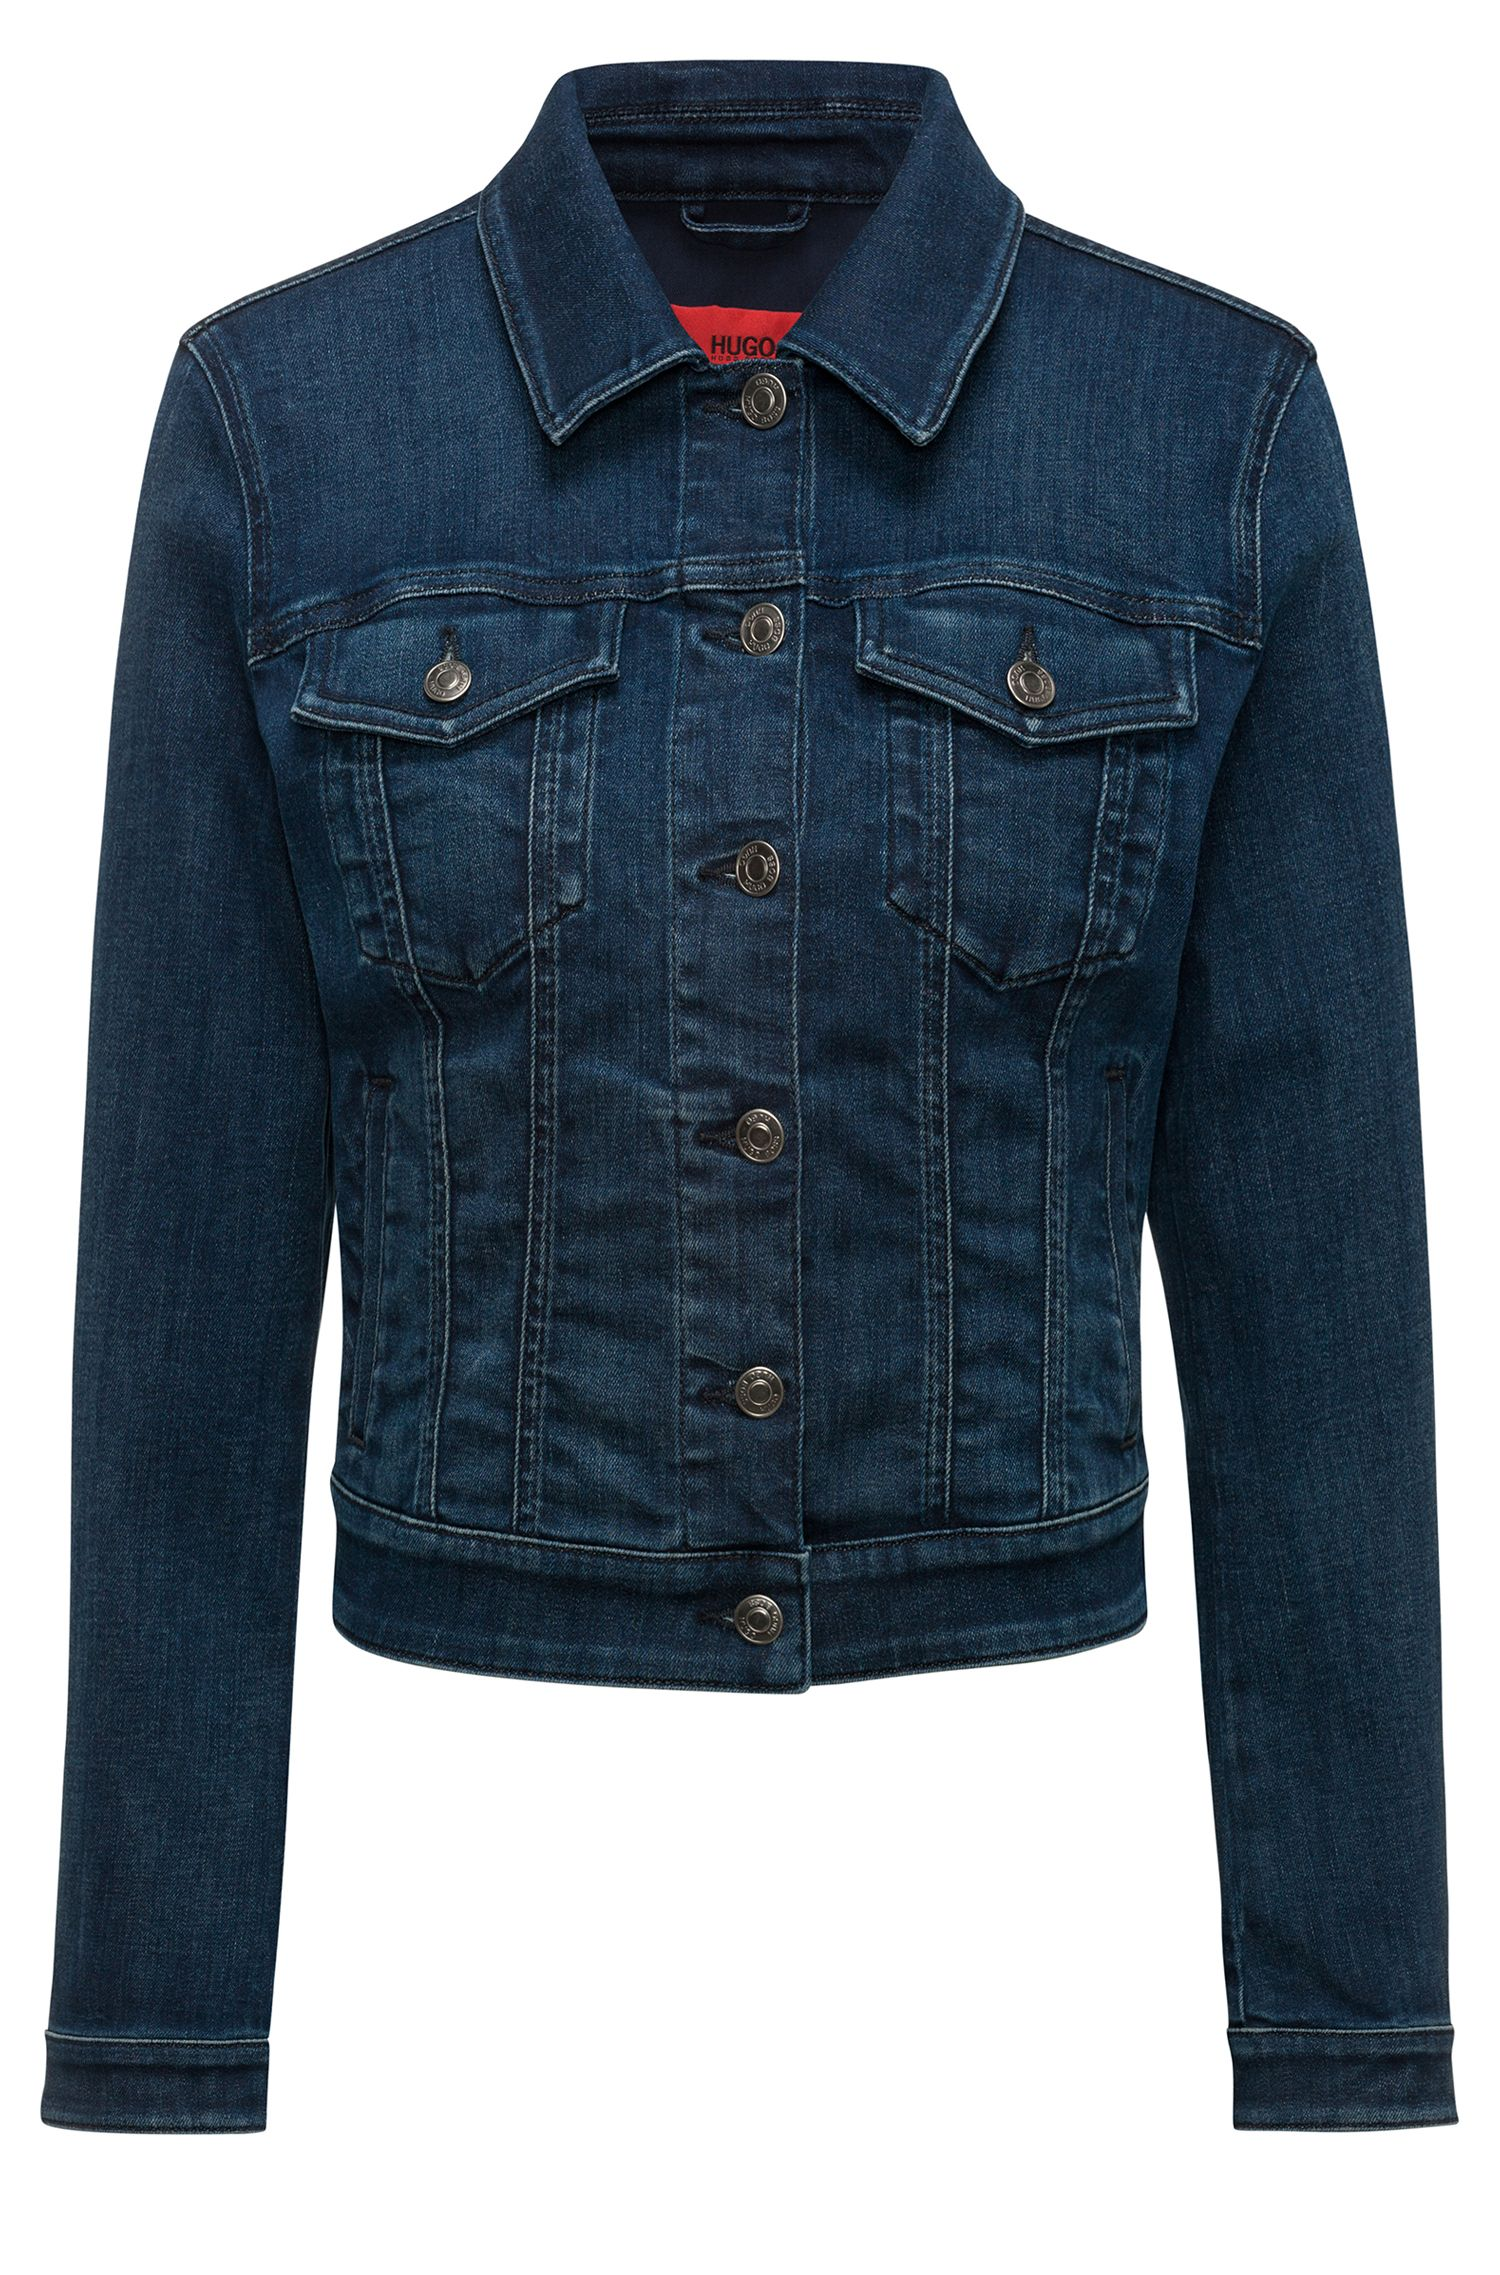 Jeansjacke aus Stretch-Denim in Cropped-Länge, Blau